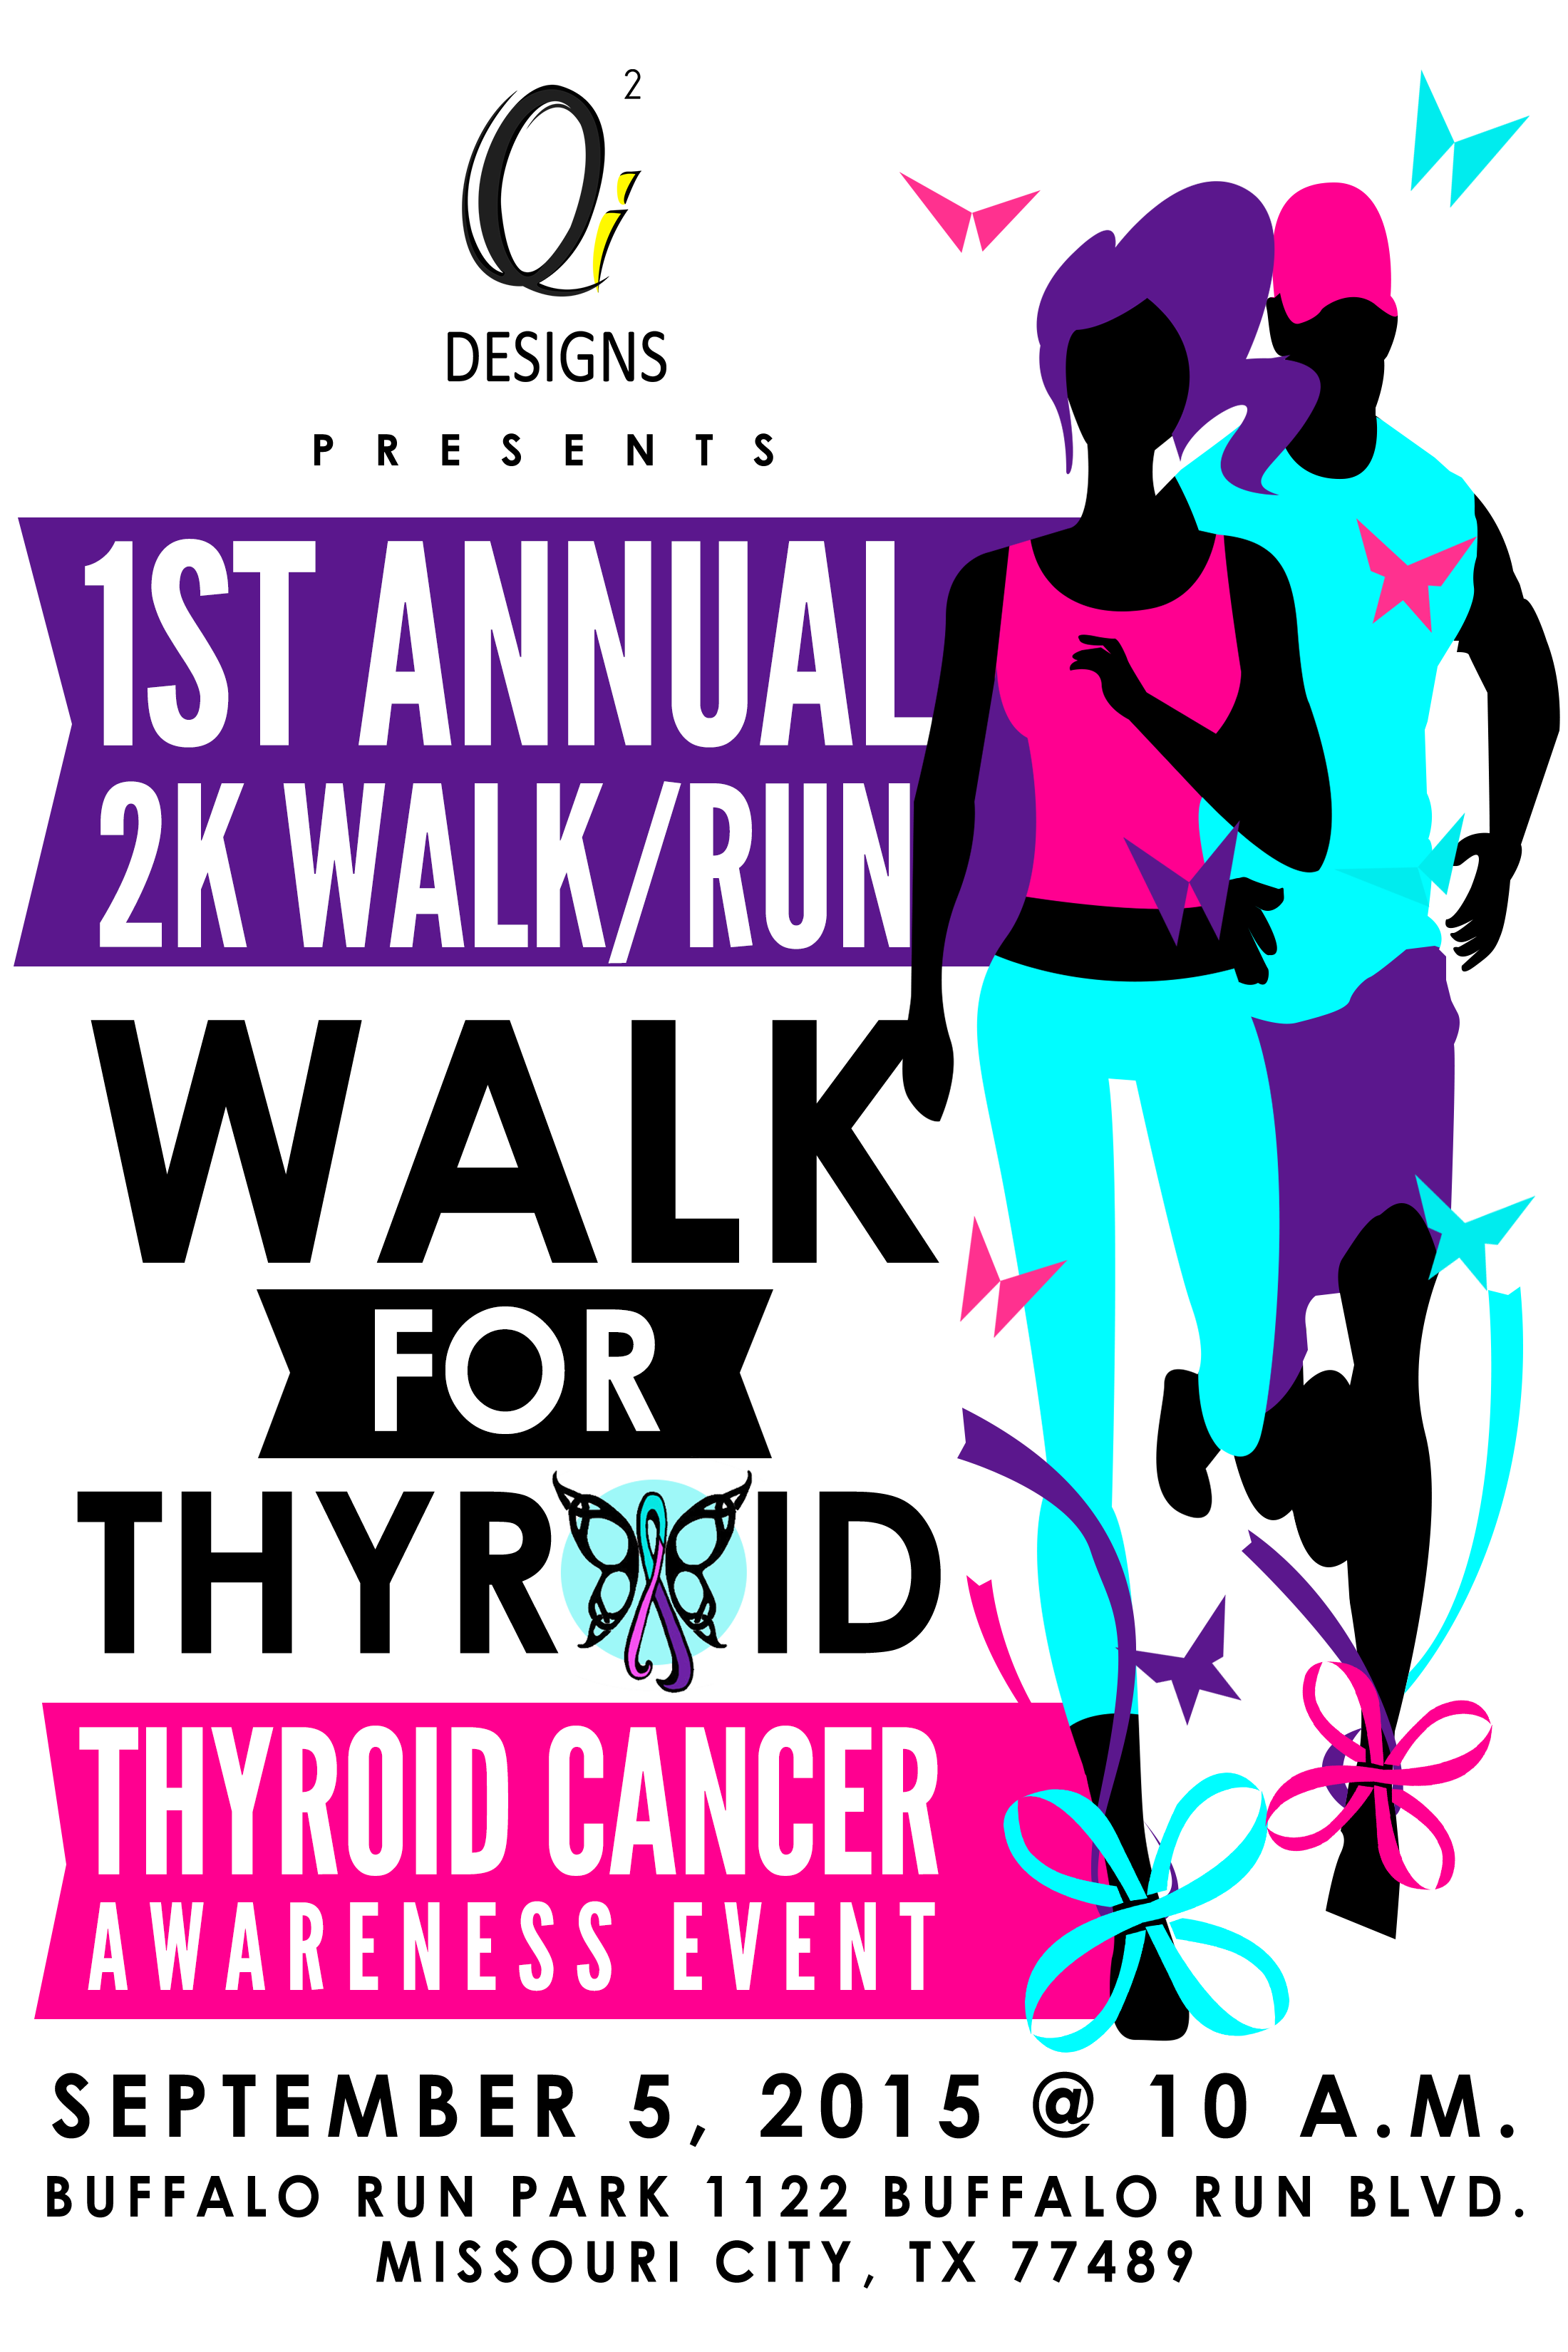 images.raceentry.com/infopages/walk-for-thyroid-infopages-1439.png